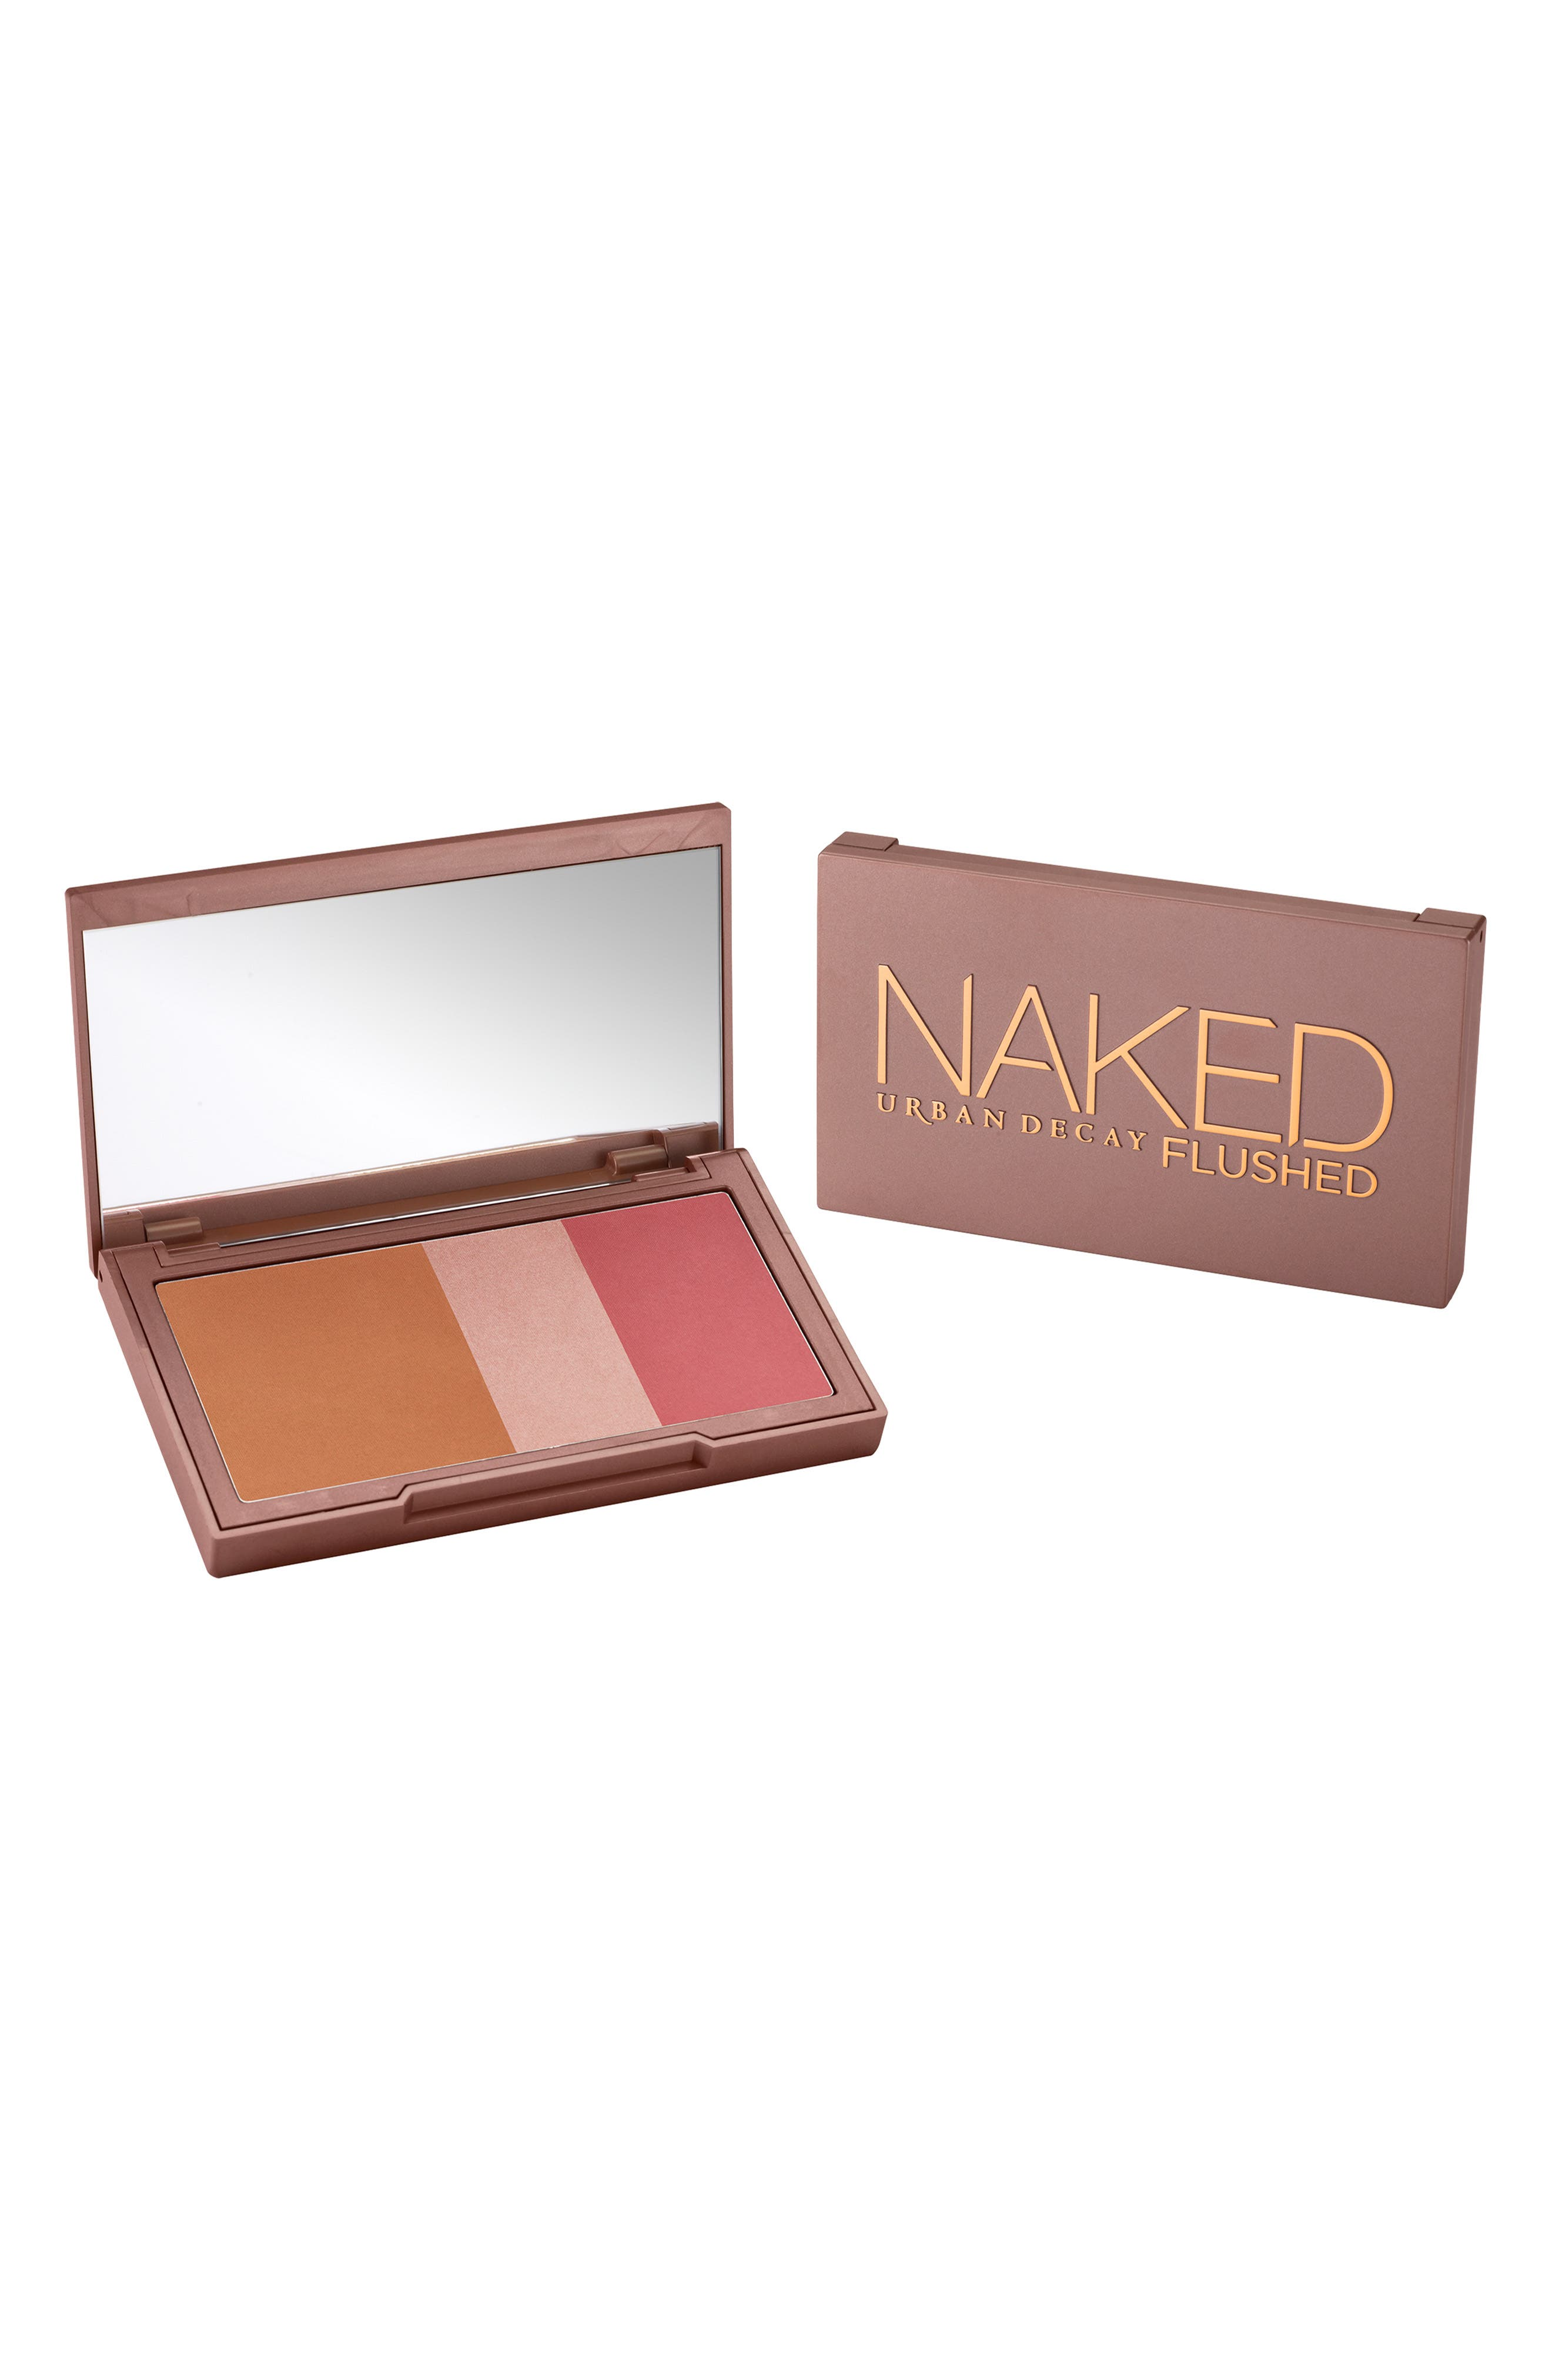 Naked Flushed Bronzer, Highlighter & Blush Palette,                             Alternate thumbnail 3, color,                             NAKED